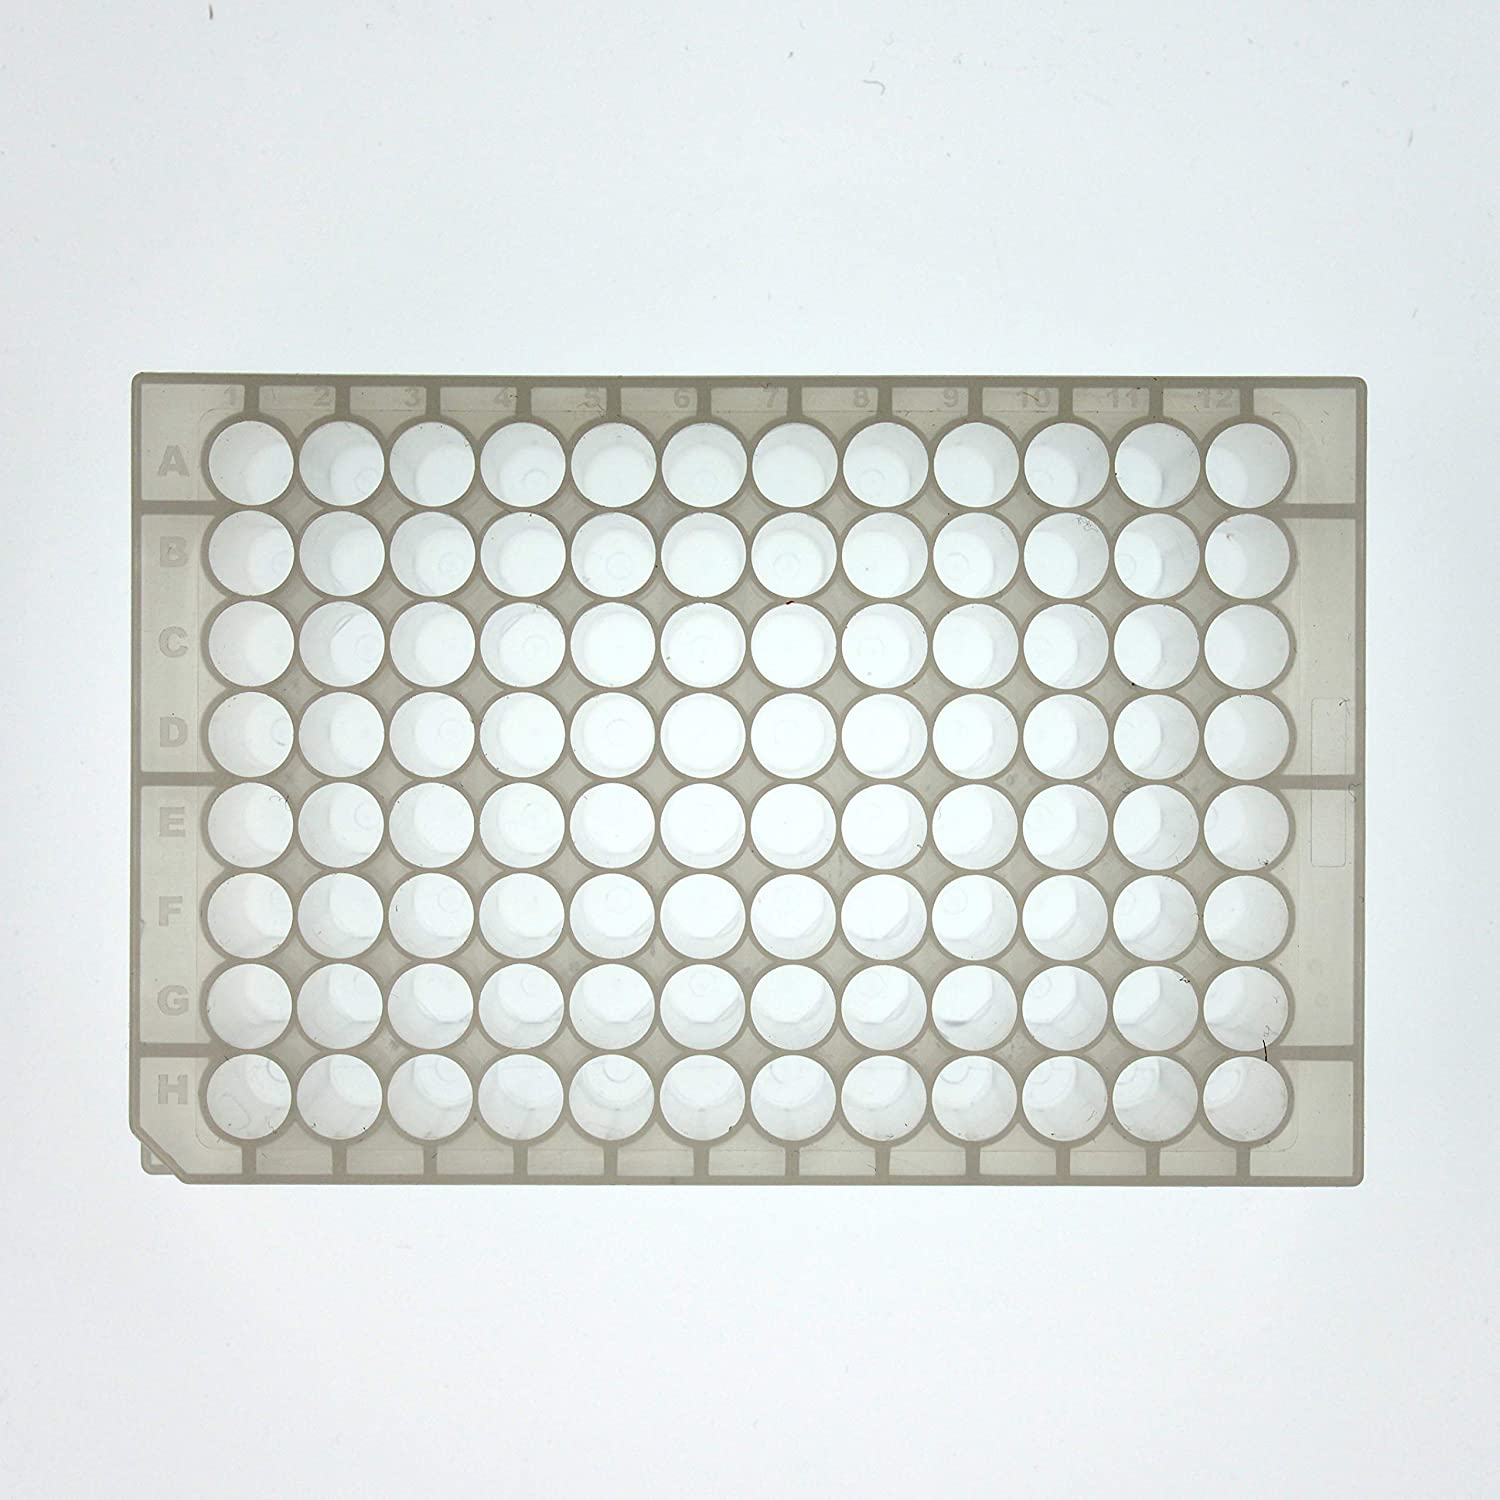 2.0 ml 96-Well Deep Well Plate, U-Bottom, Round Well, Non-Sterile